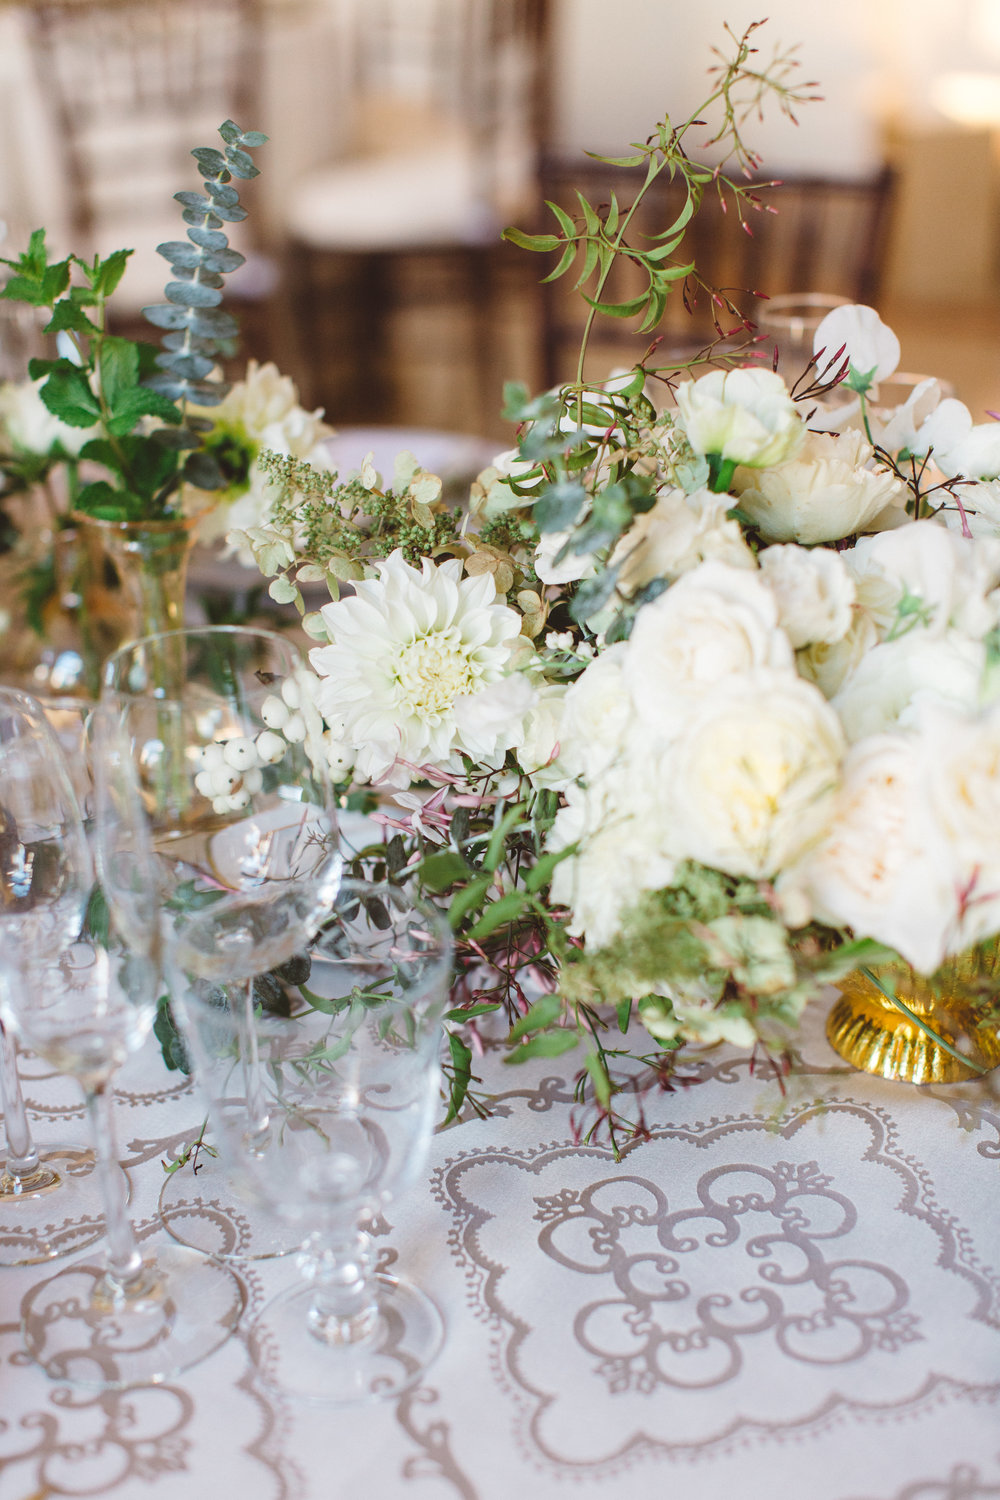 Anna Delores Photography_Lindsay & Curt 09.17.16-468.jpg